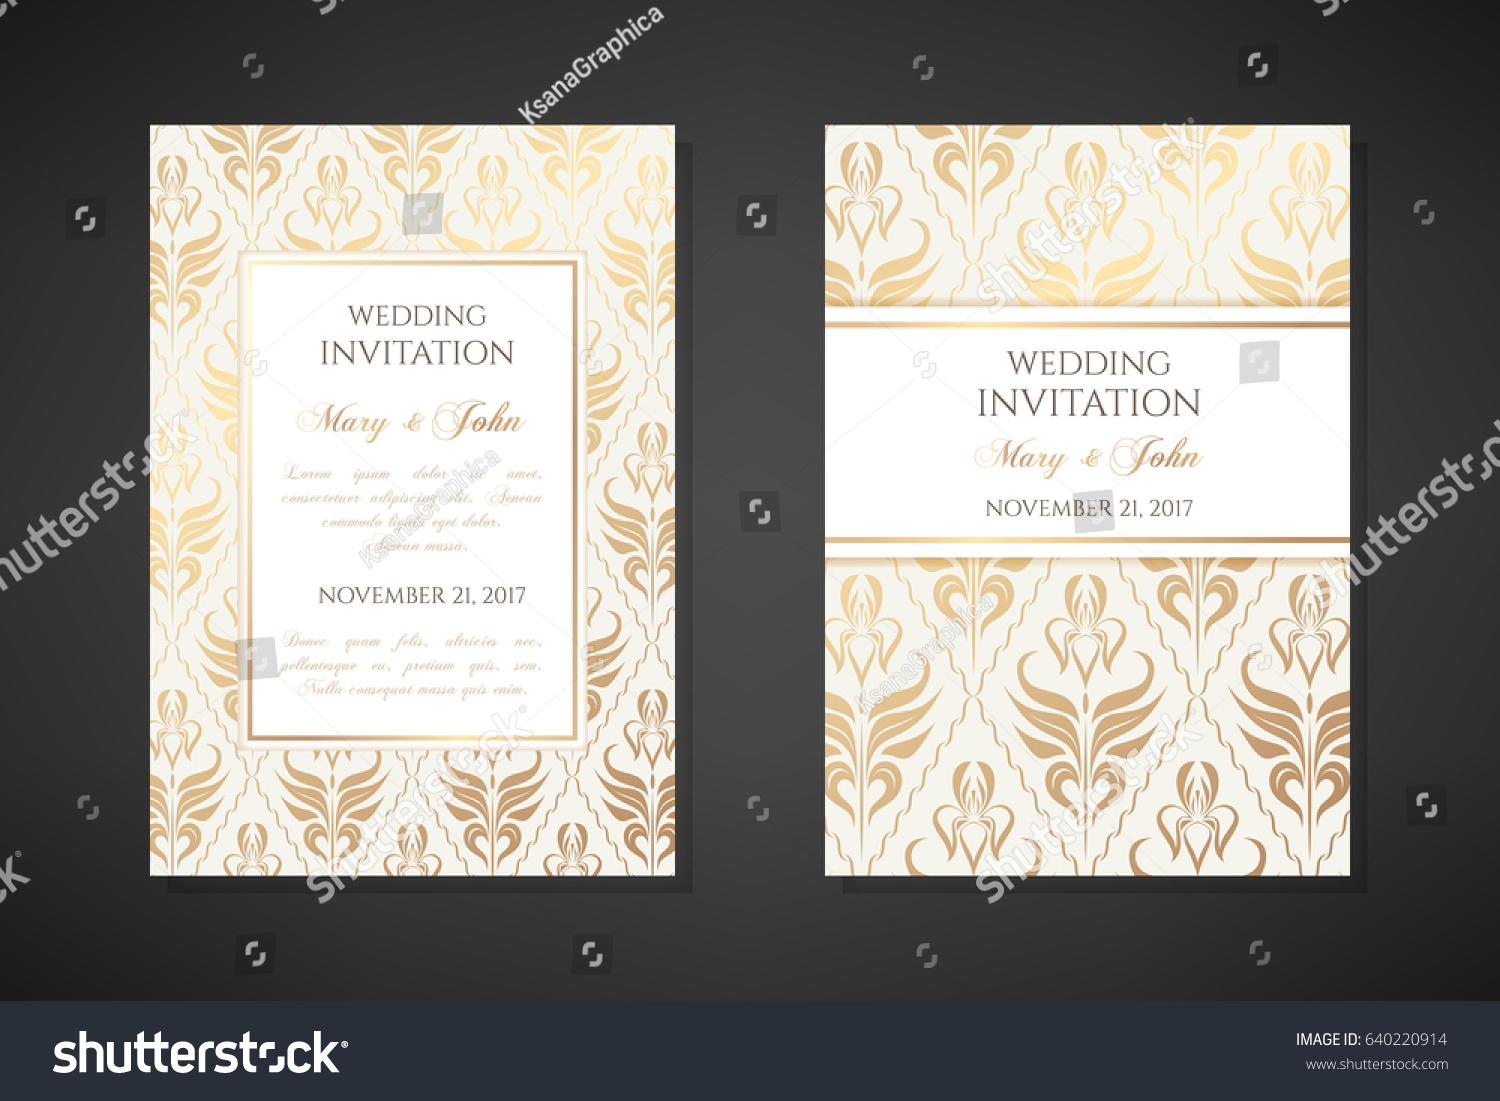 vintage wedding invitation templates cover design stock vector